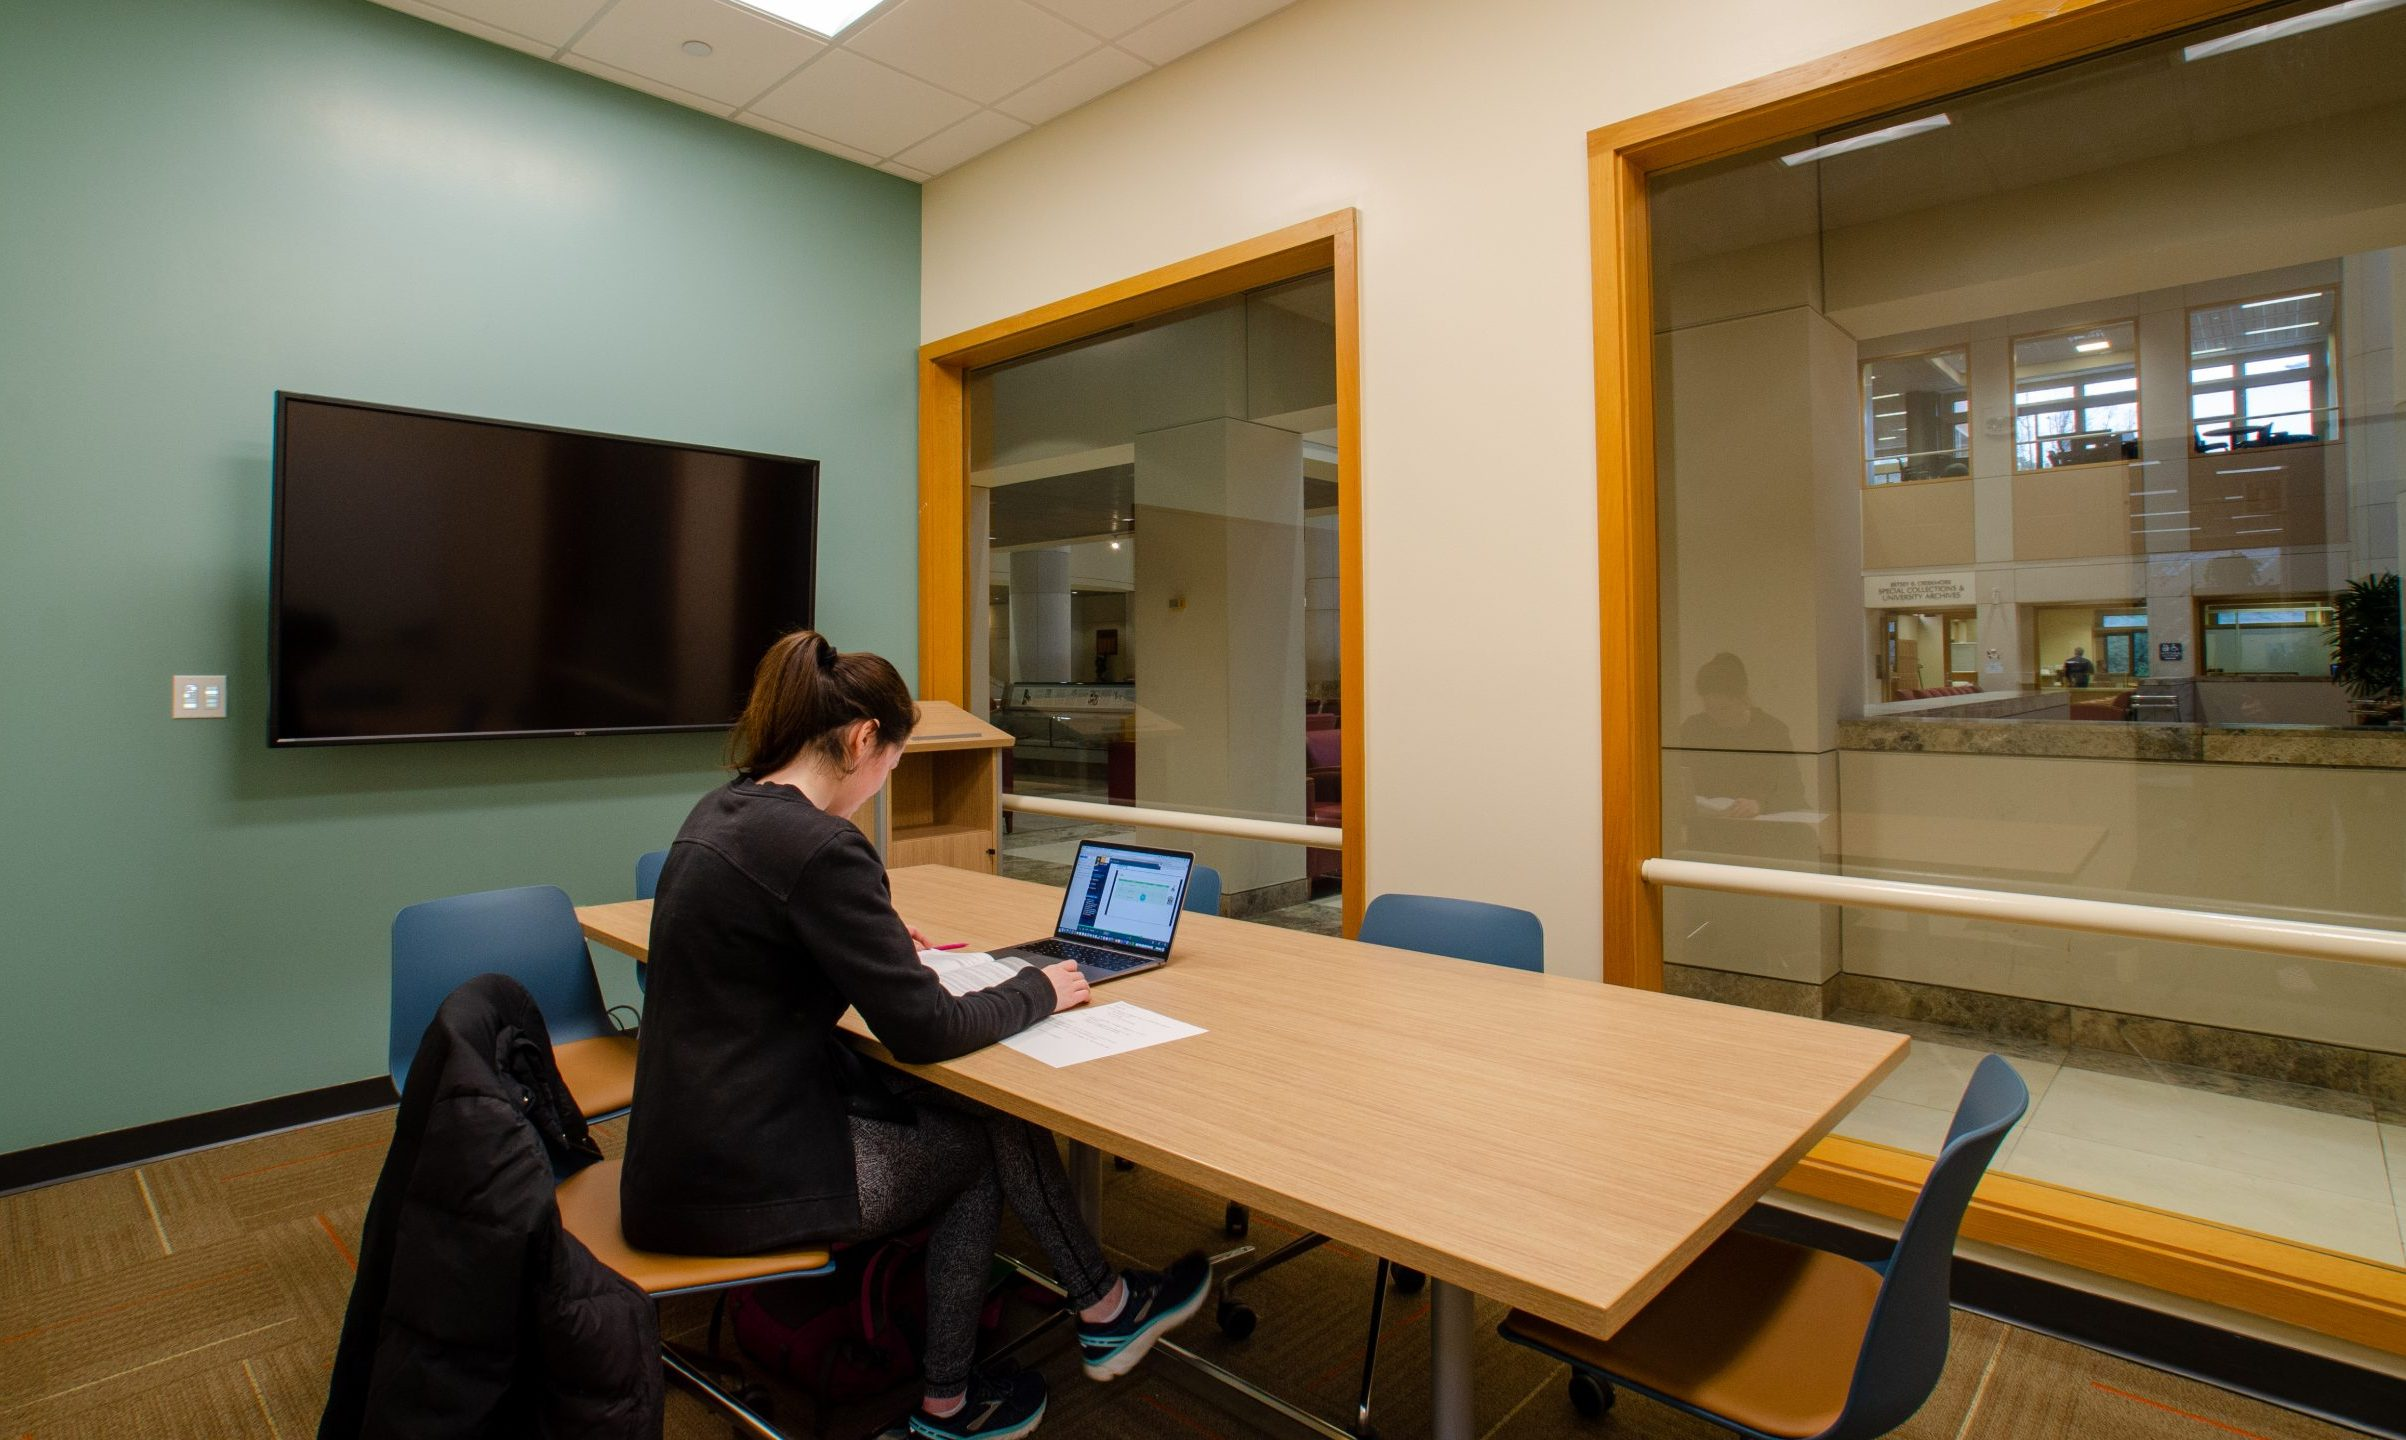 Graduate Commons Study Rooms - large hodges library university of tennessee